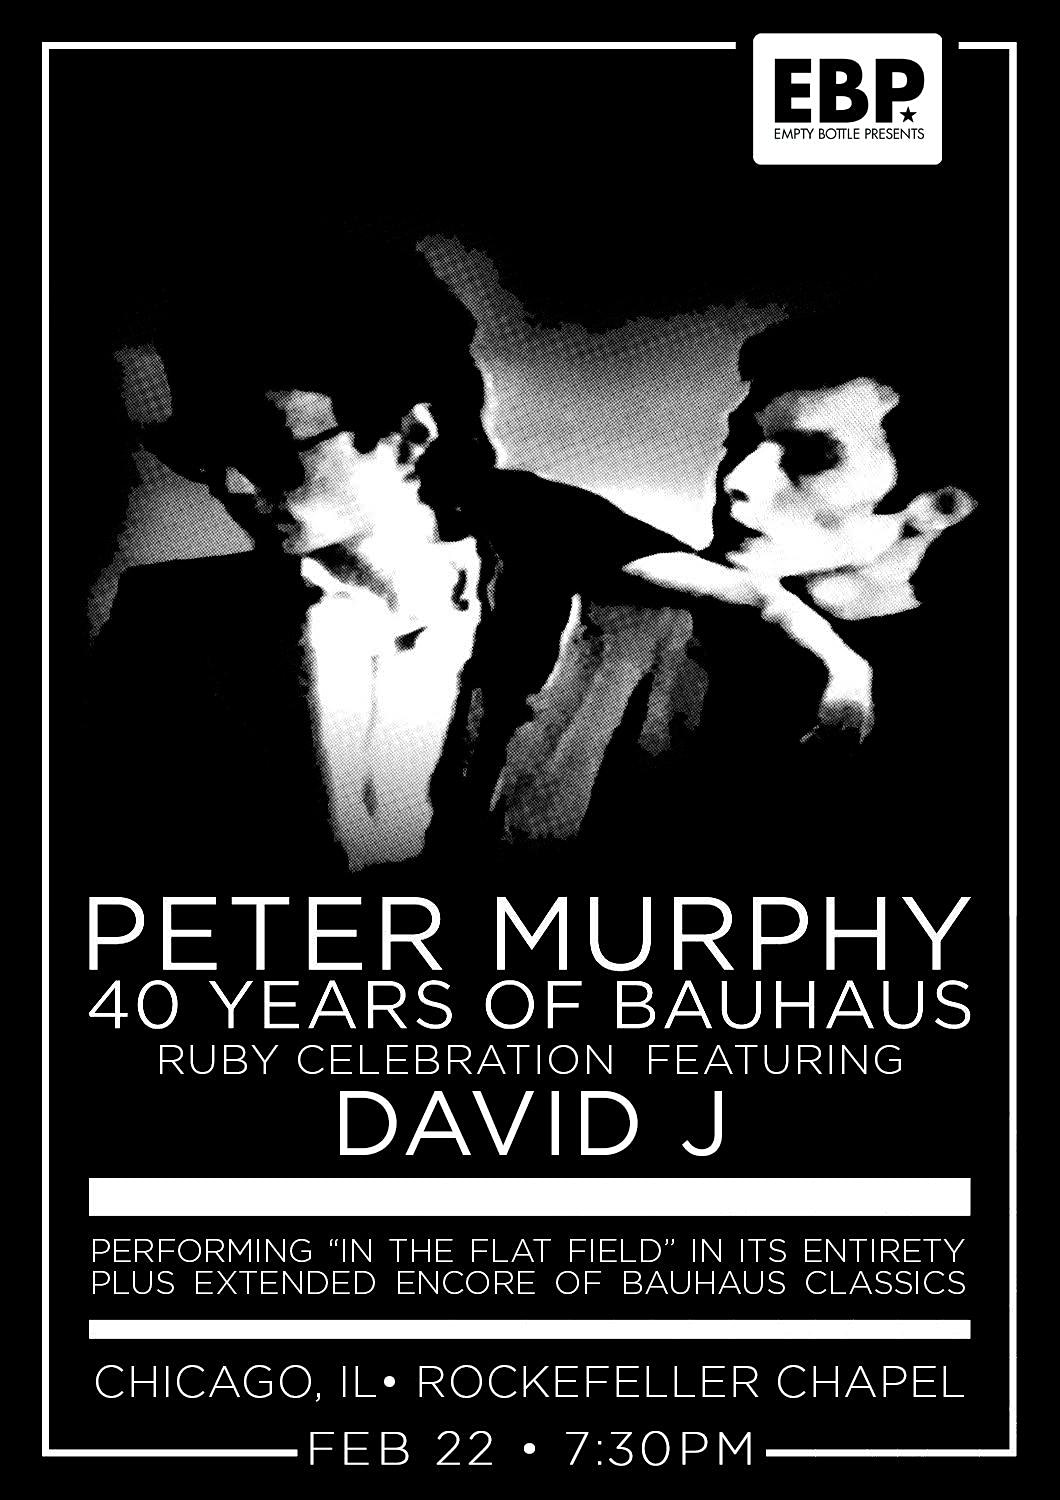 """Peter Murphy 40 years of Bauhaus, Ruby Celebration featuring David J Performing """"In the Flat Field"""" in its entirety plus extended encore of Bauhaus classics"""